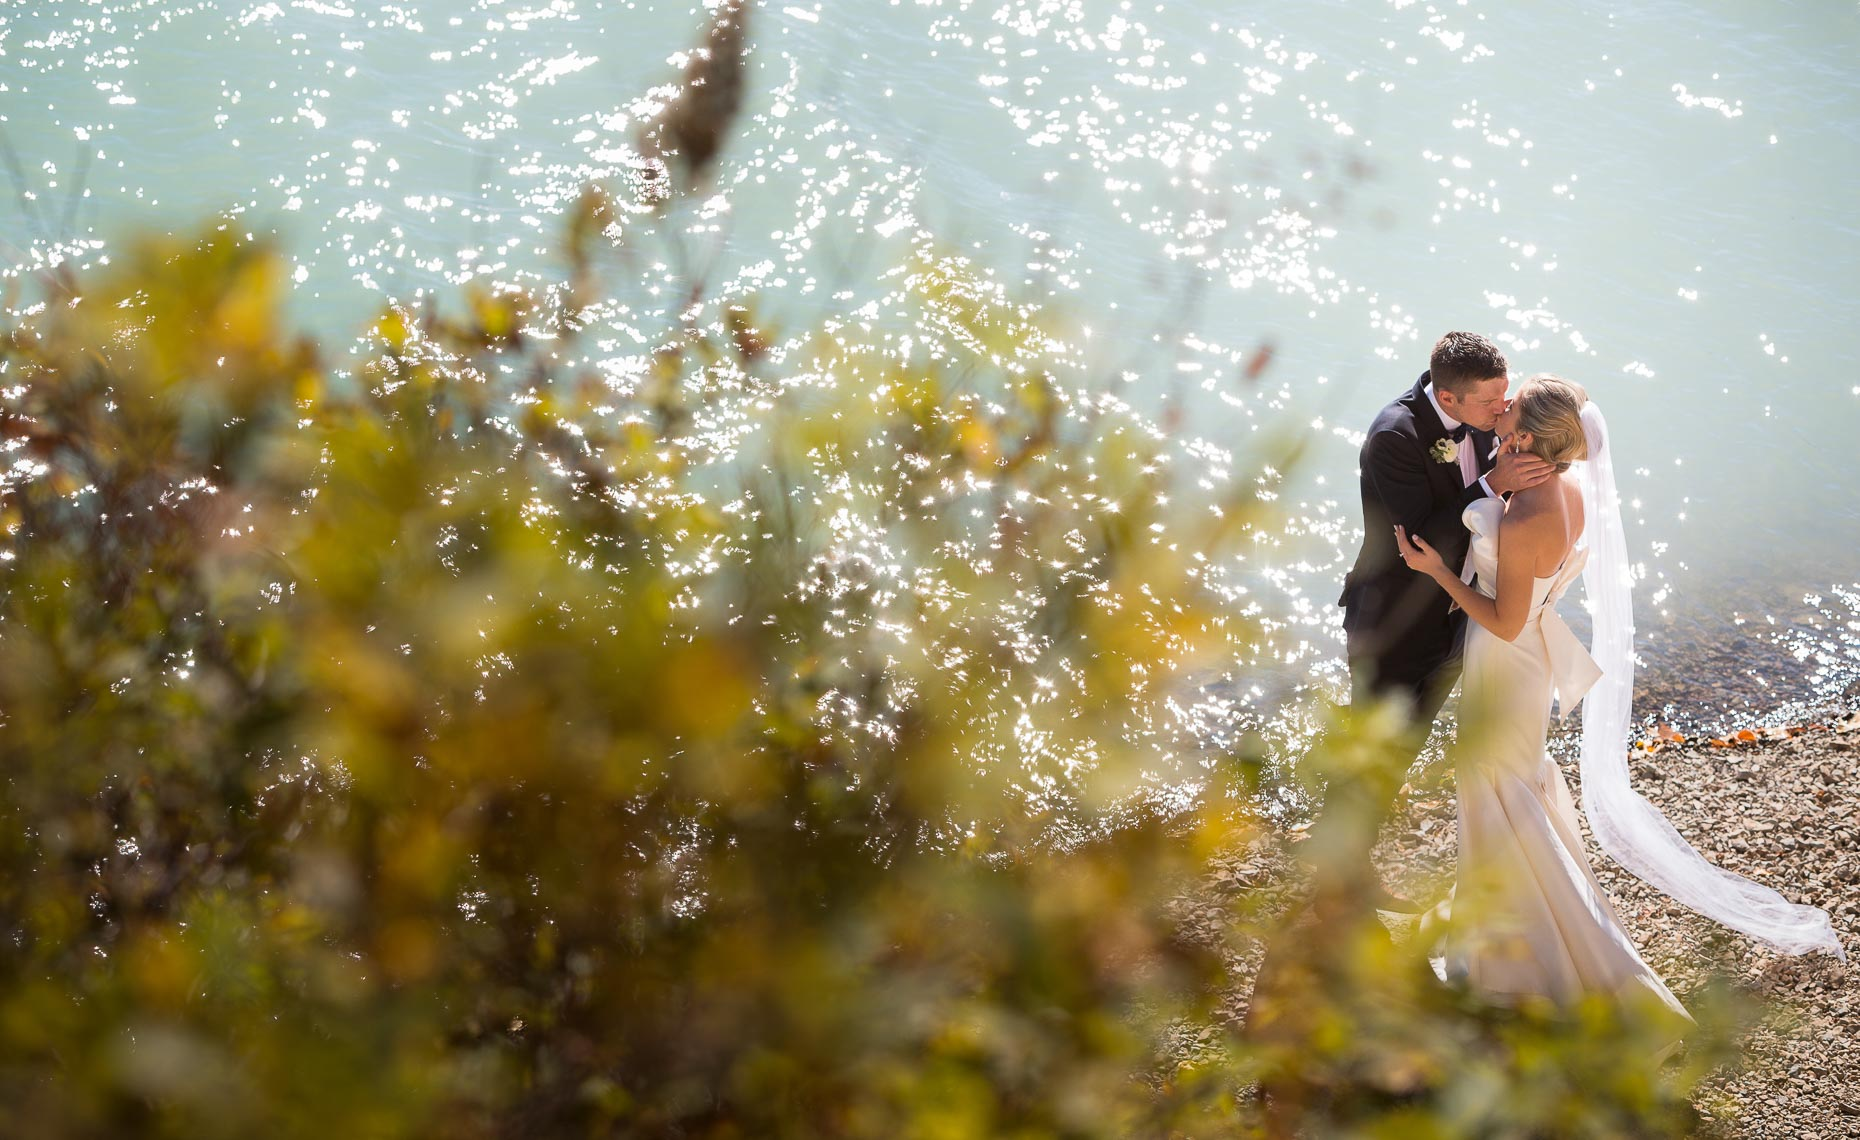 Intimate lakeside moment for wedding couple in Whistler